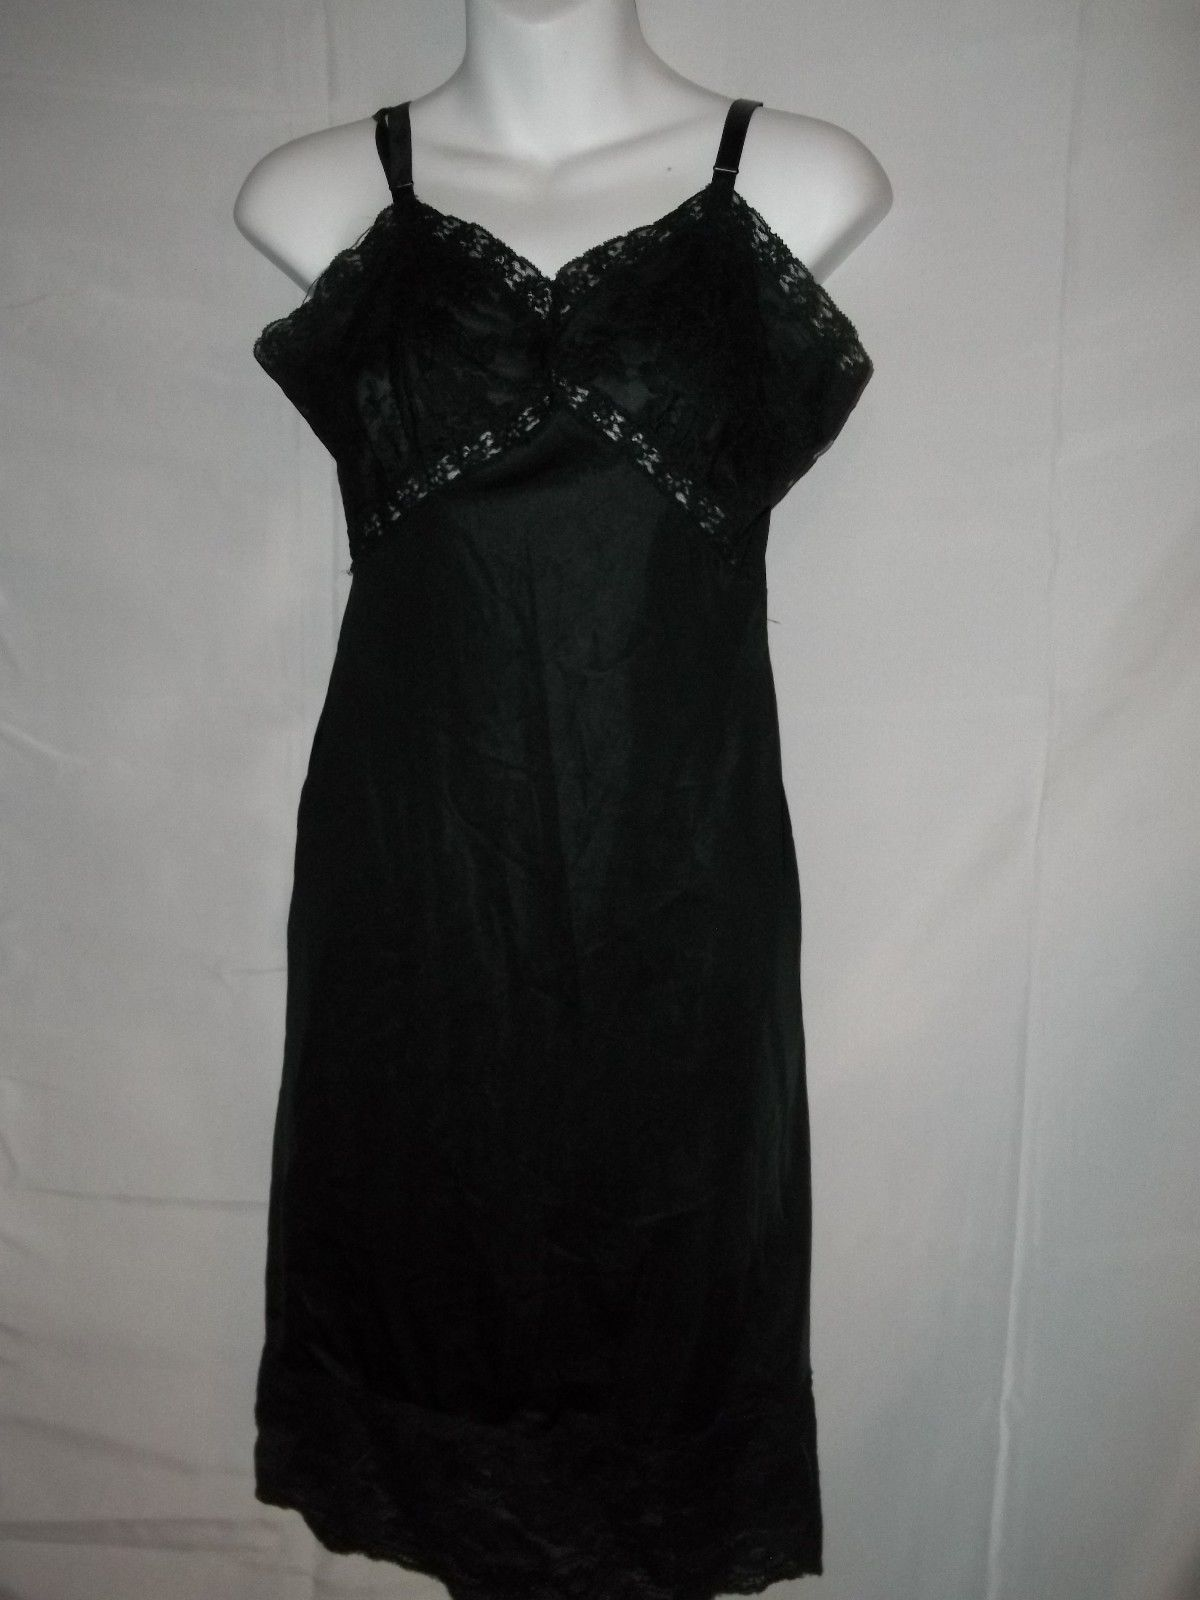 Primary image for Vintage Black Sears Full Dress lacy Slip Size 34 Lingerie